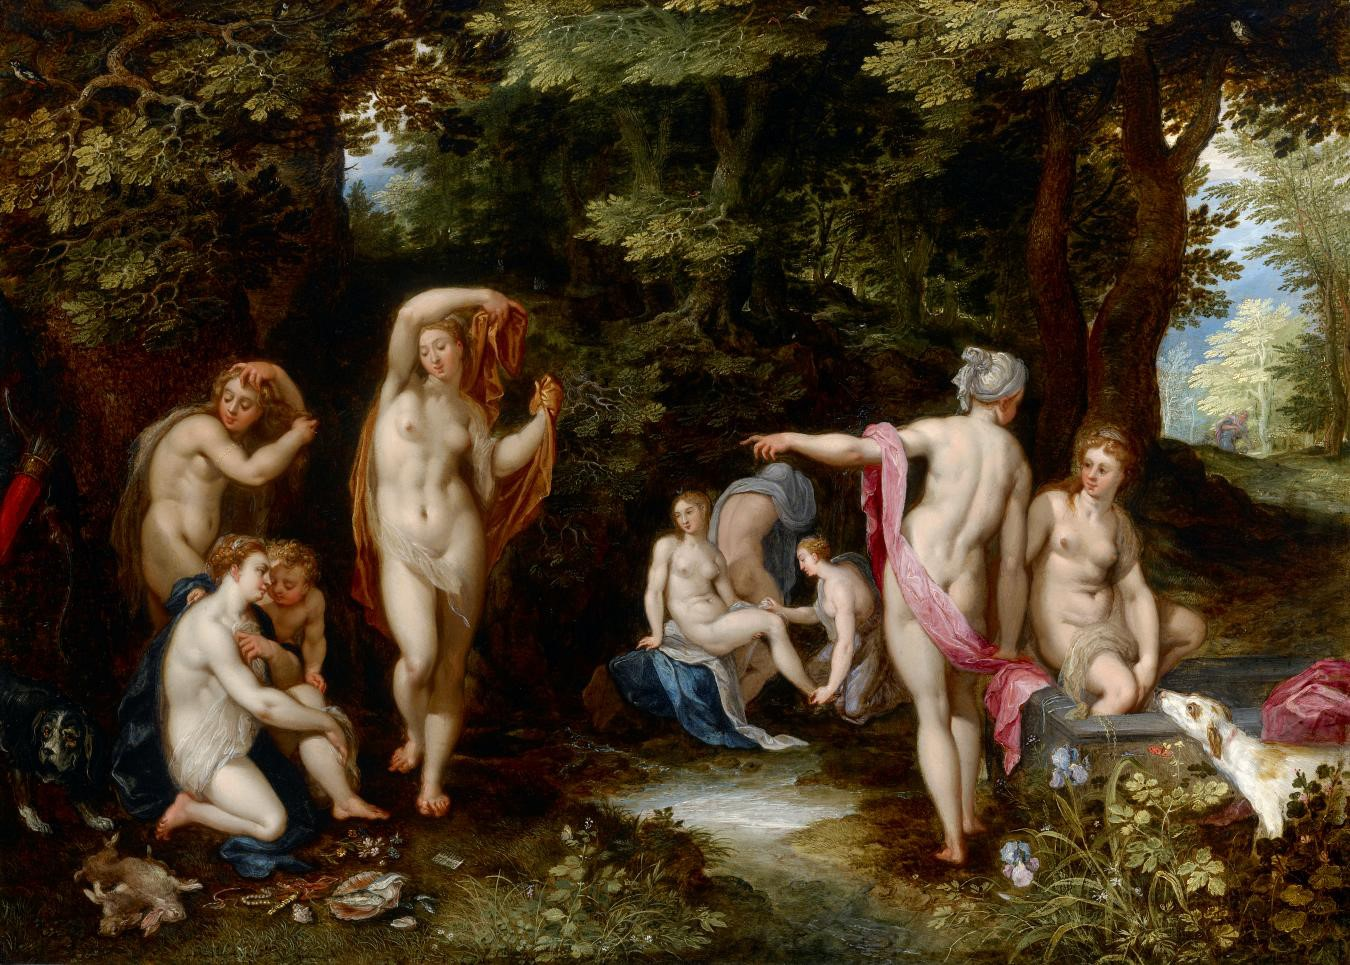 Jan Brueghel the Elder, Diana and Actaeon, c. 1600